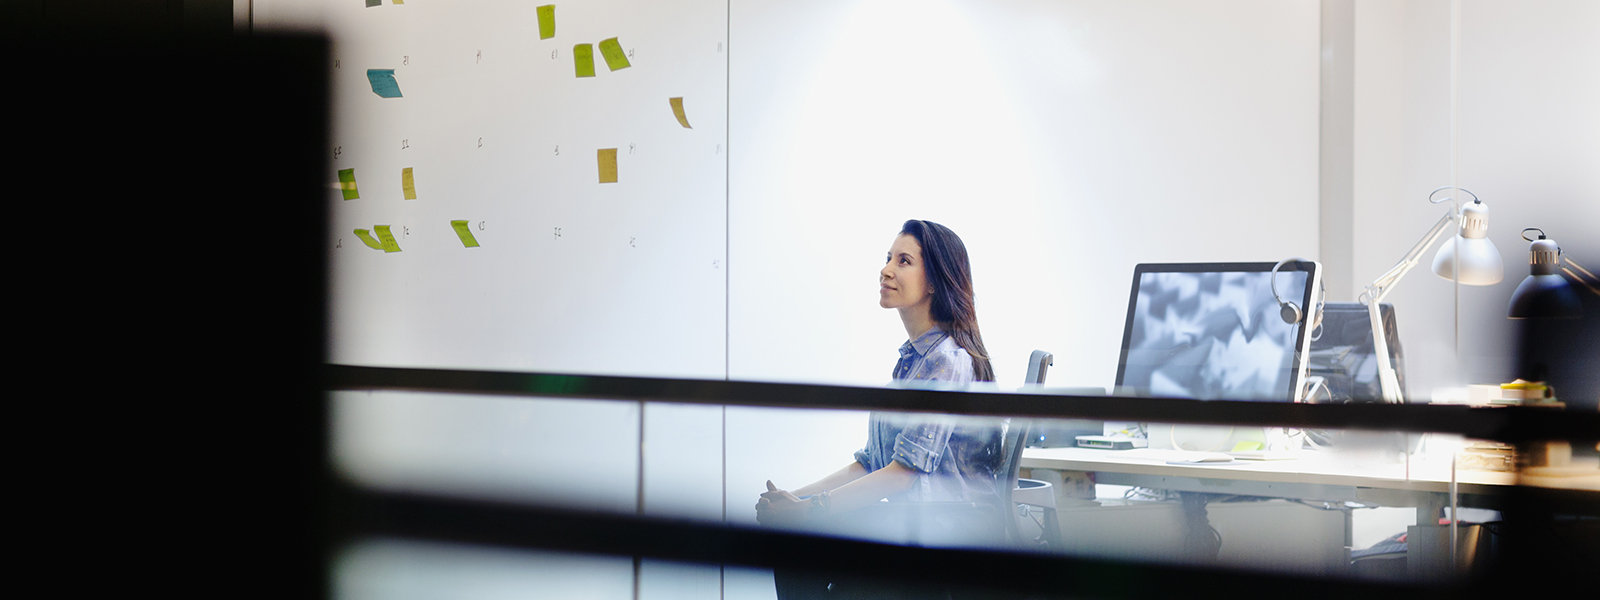 Woman looking at post-it notes on glass wall in office